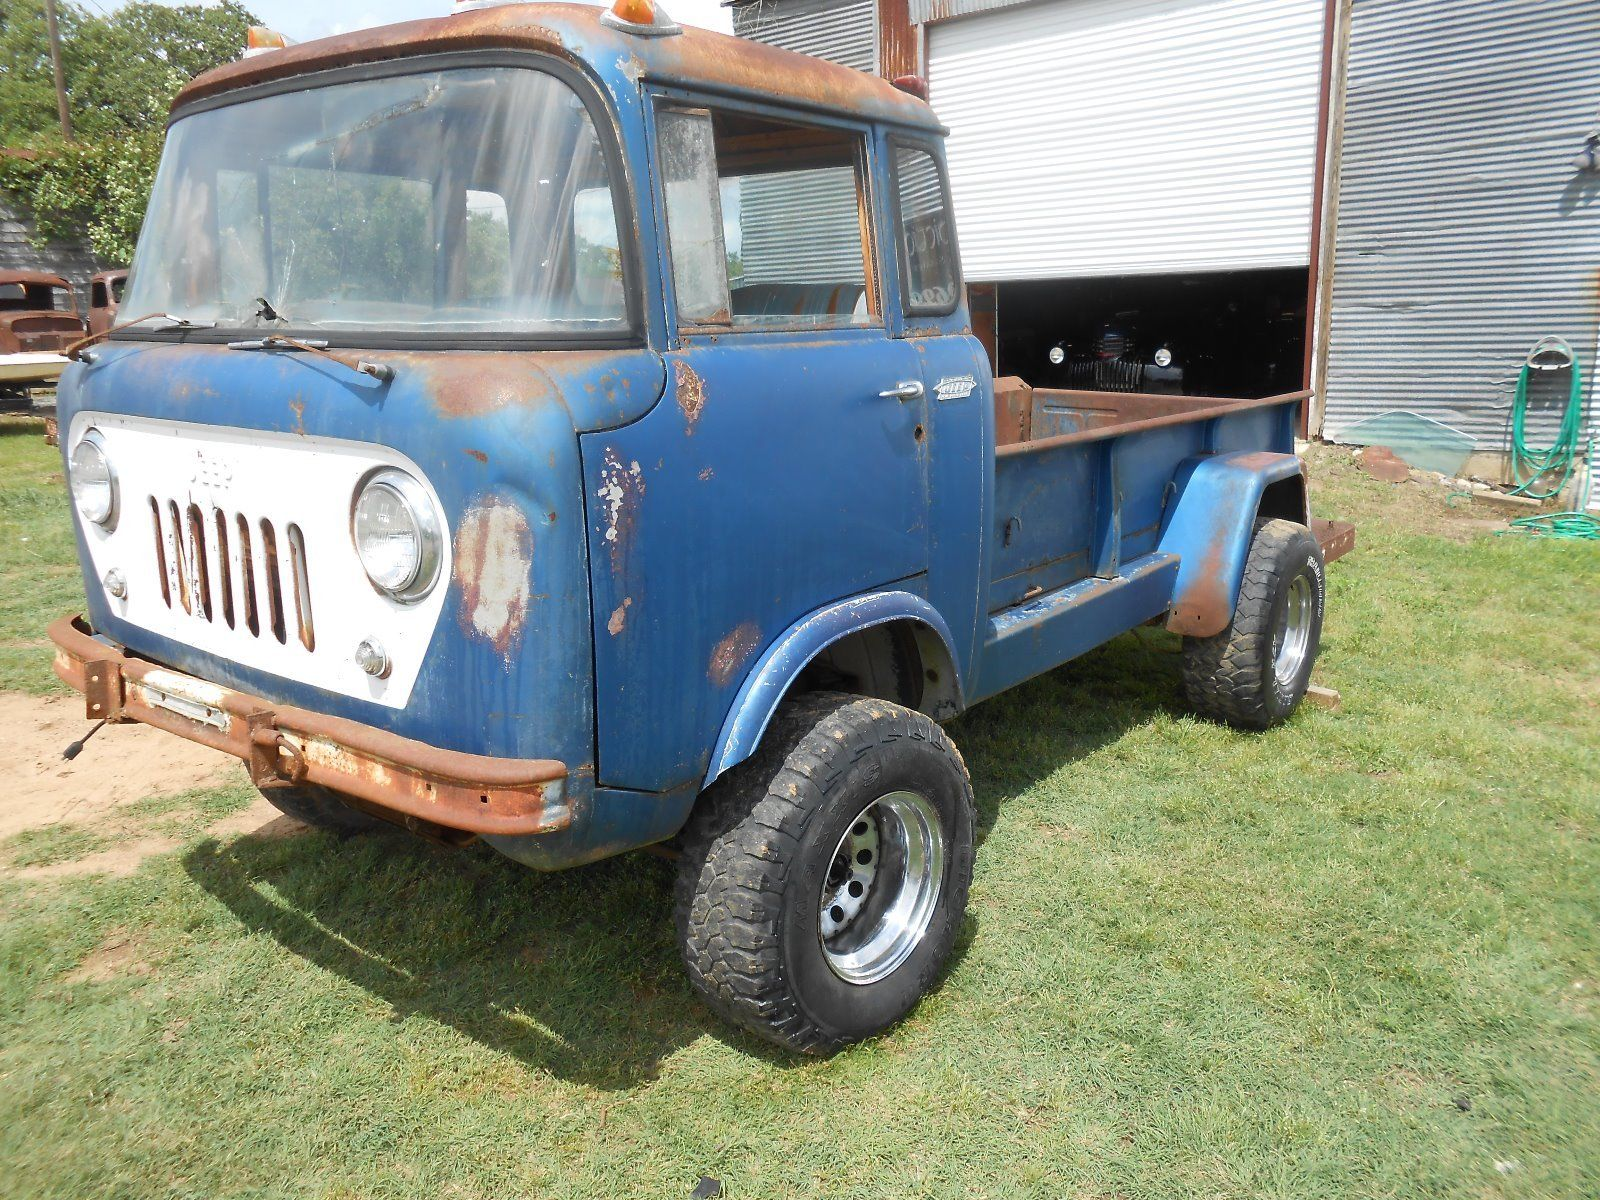 1959 Fc 170 Rockdale Tx Status Unknown Ewillys Willys Jeep Truck Beds Fc170